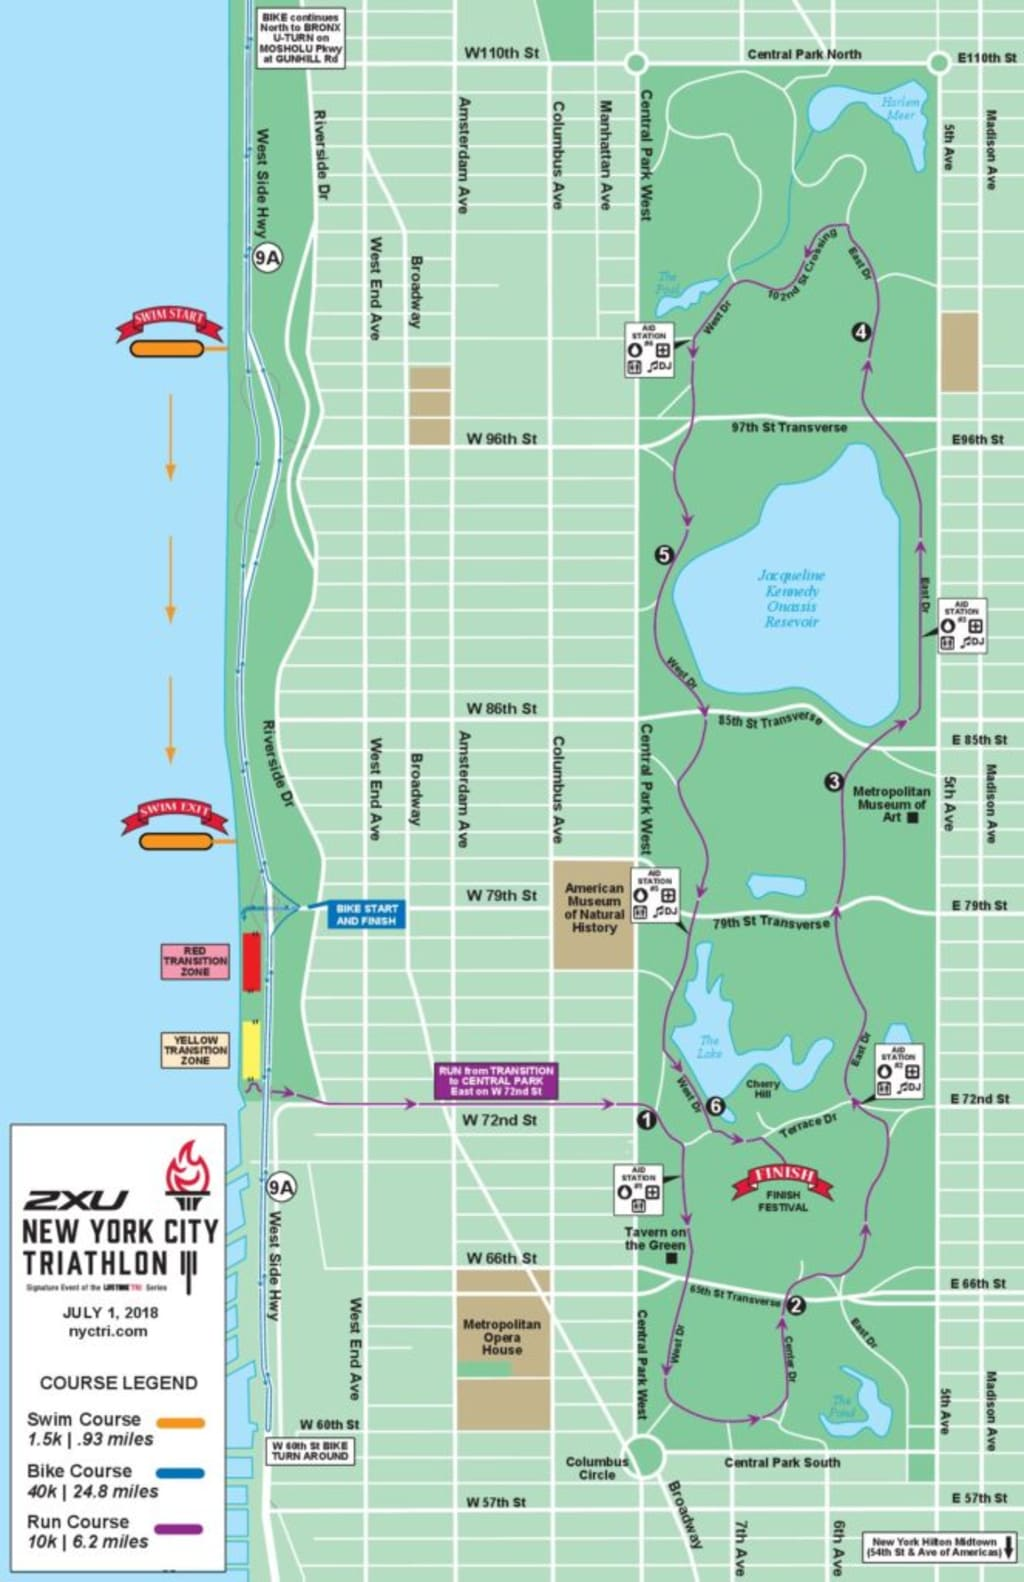 15547336680902018_NYC_Triathlon_Course_Map_Simple-pdf-663x1024.jpg